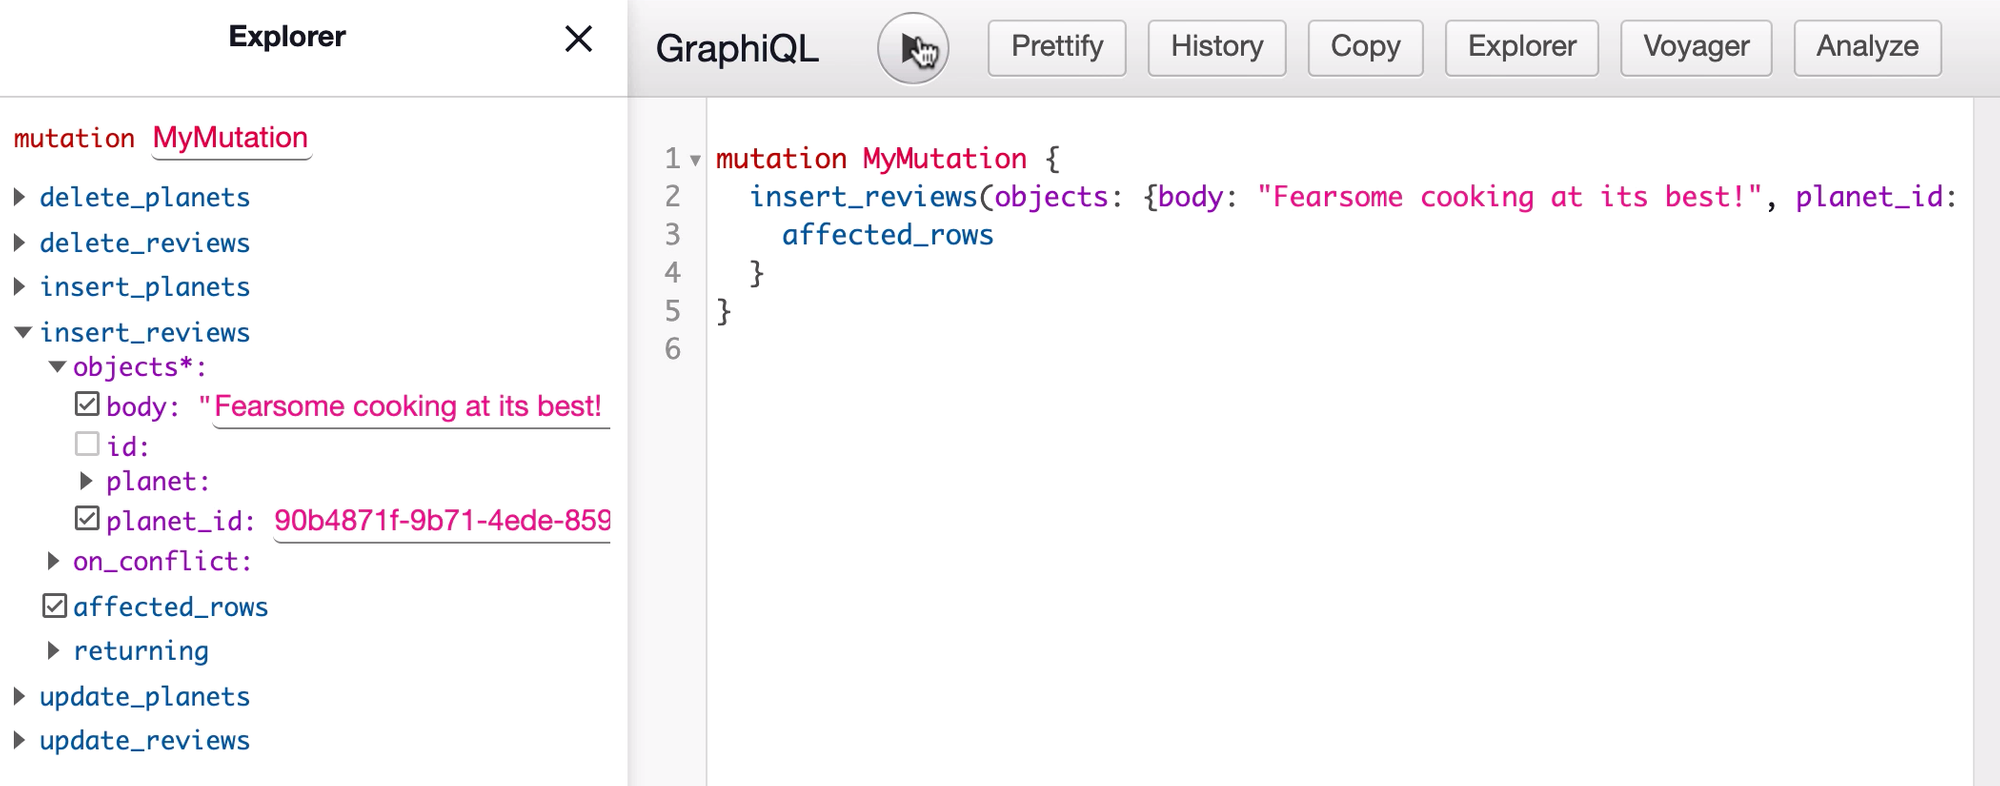 Insert review mutation in GraphiQL